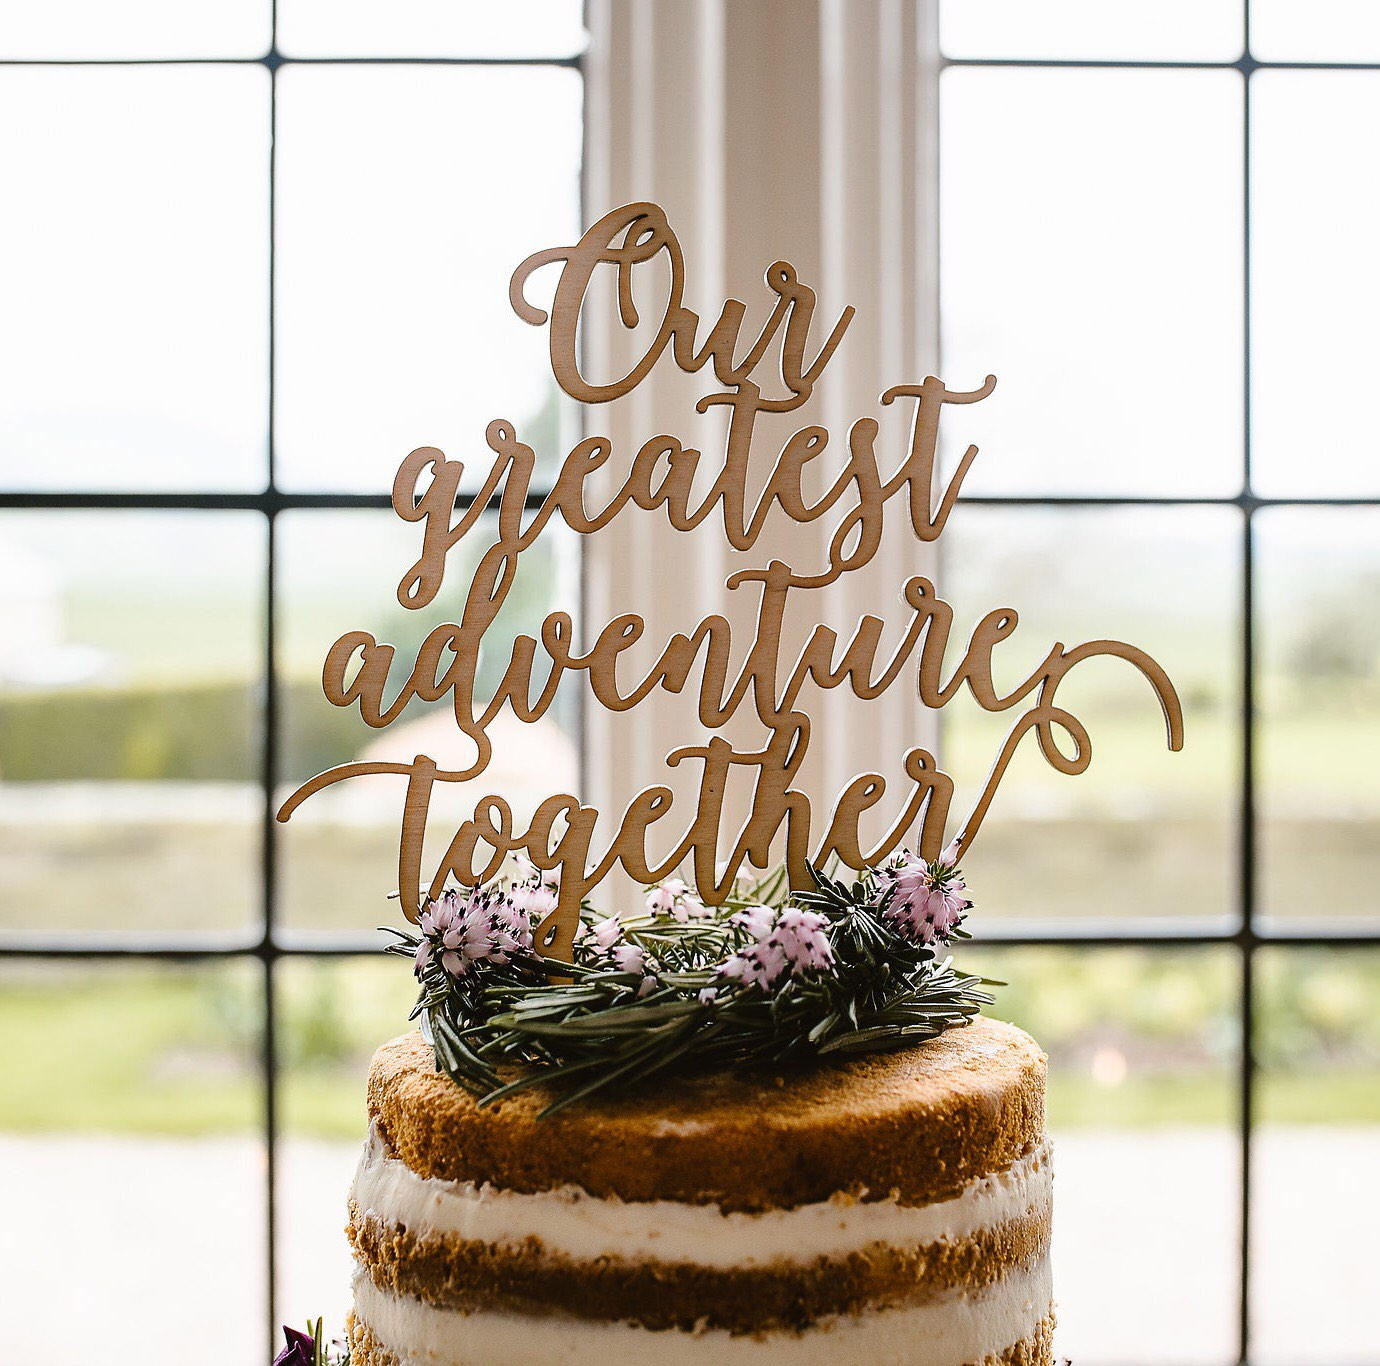 Our greatest adventurer together wedding cake topper